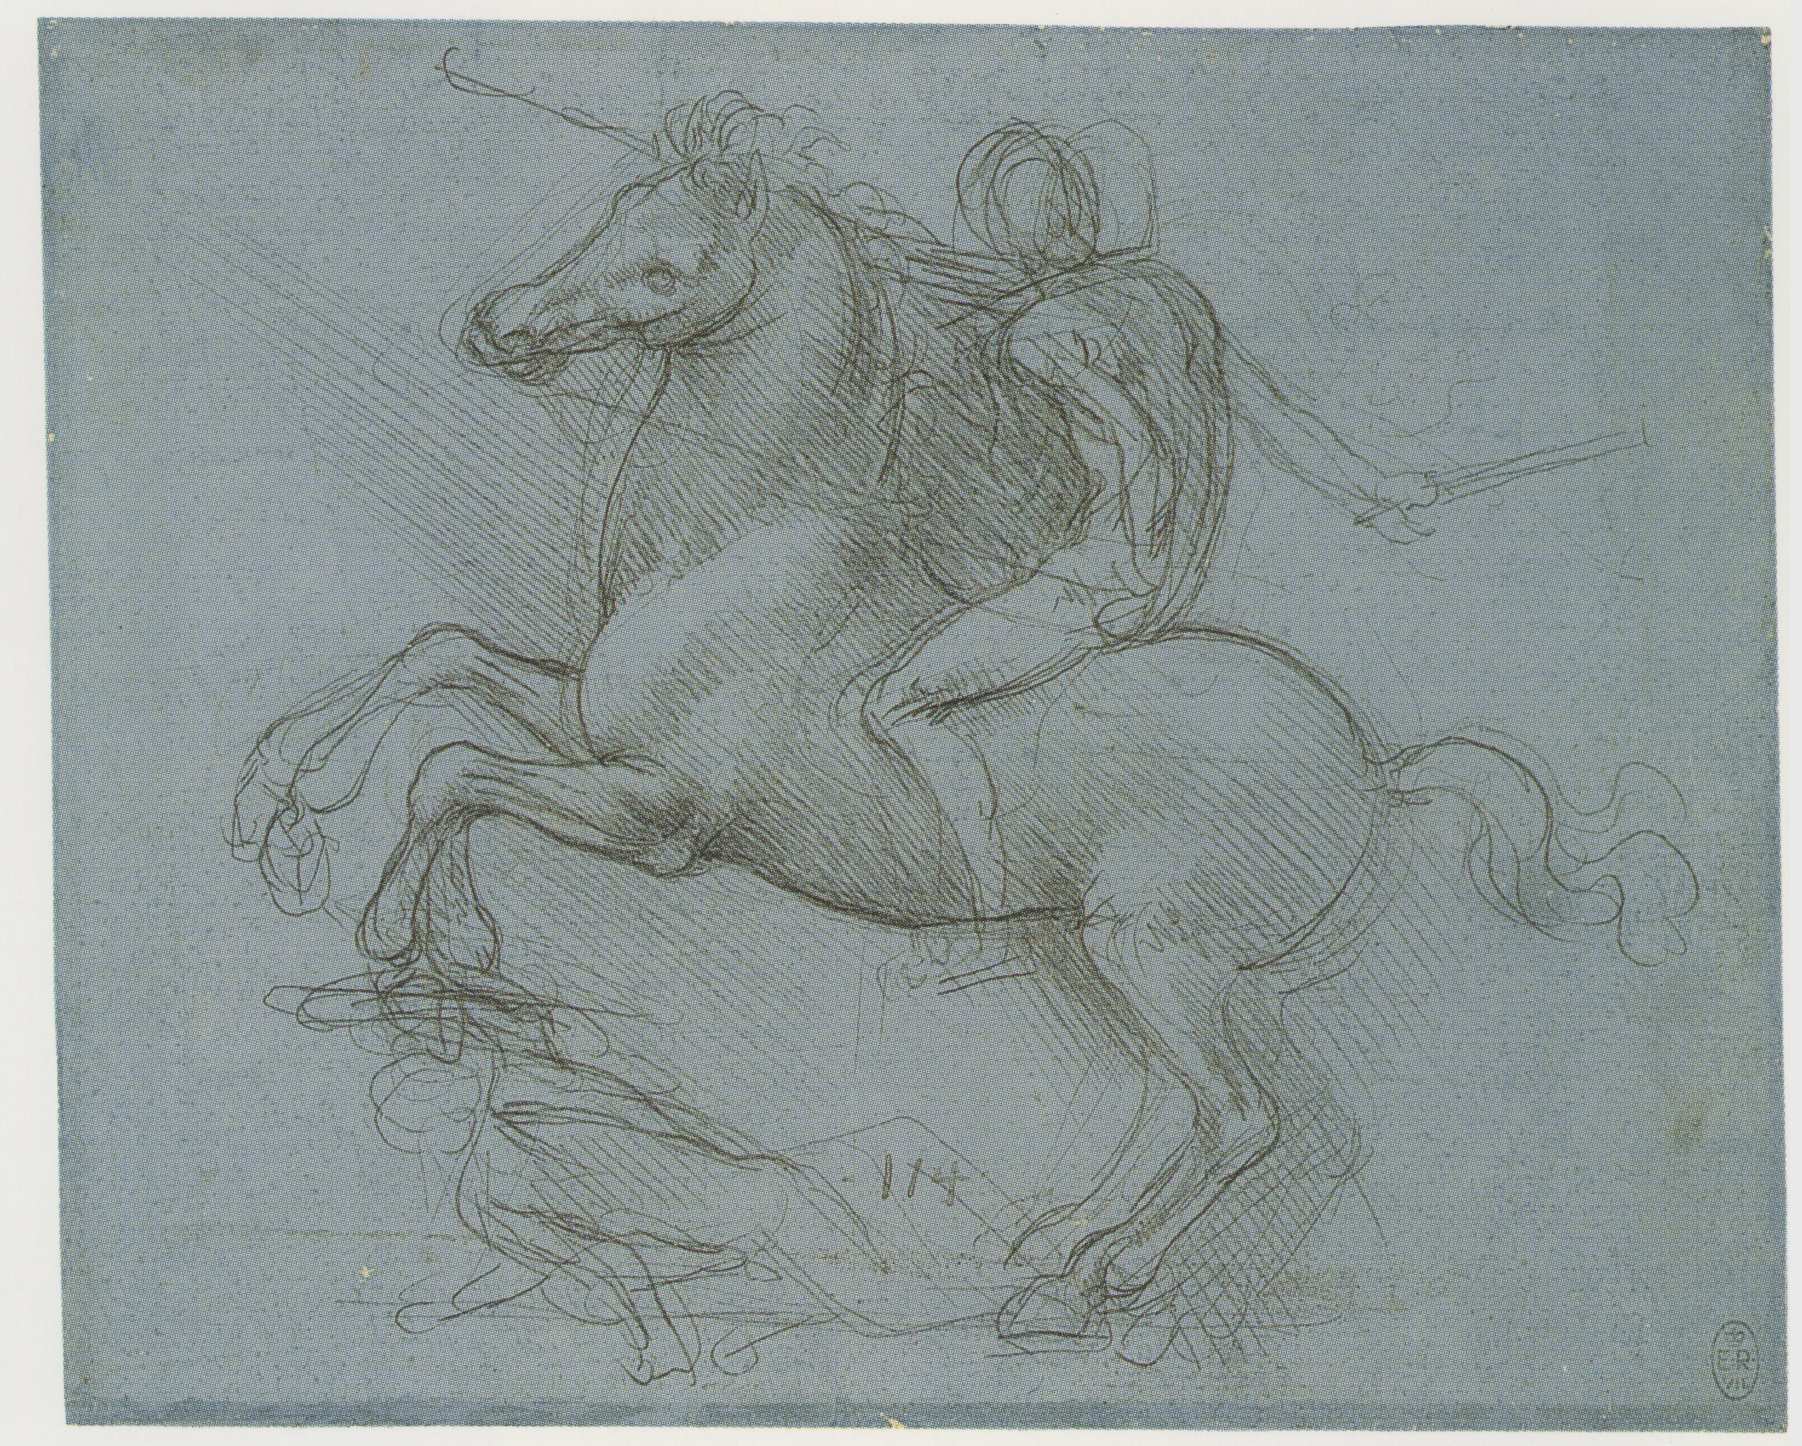 Sketch of the Casting pit for the Sforza horse seen from the side 1493.jpg